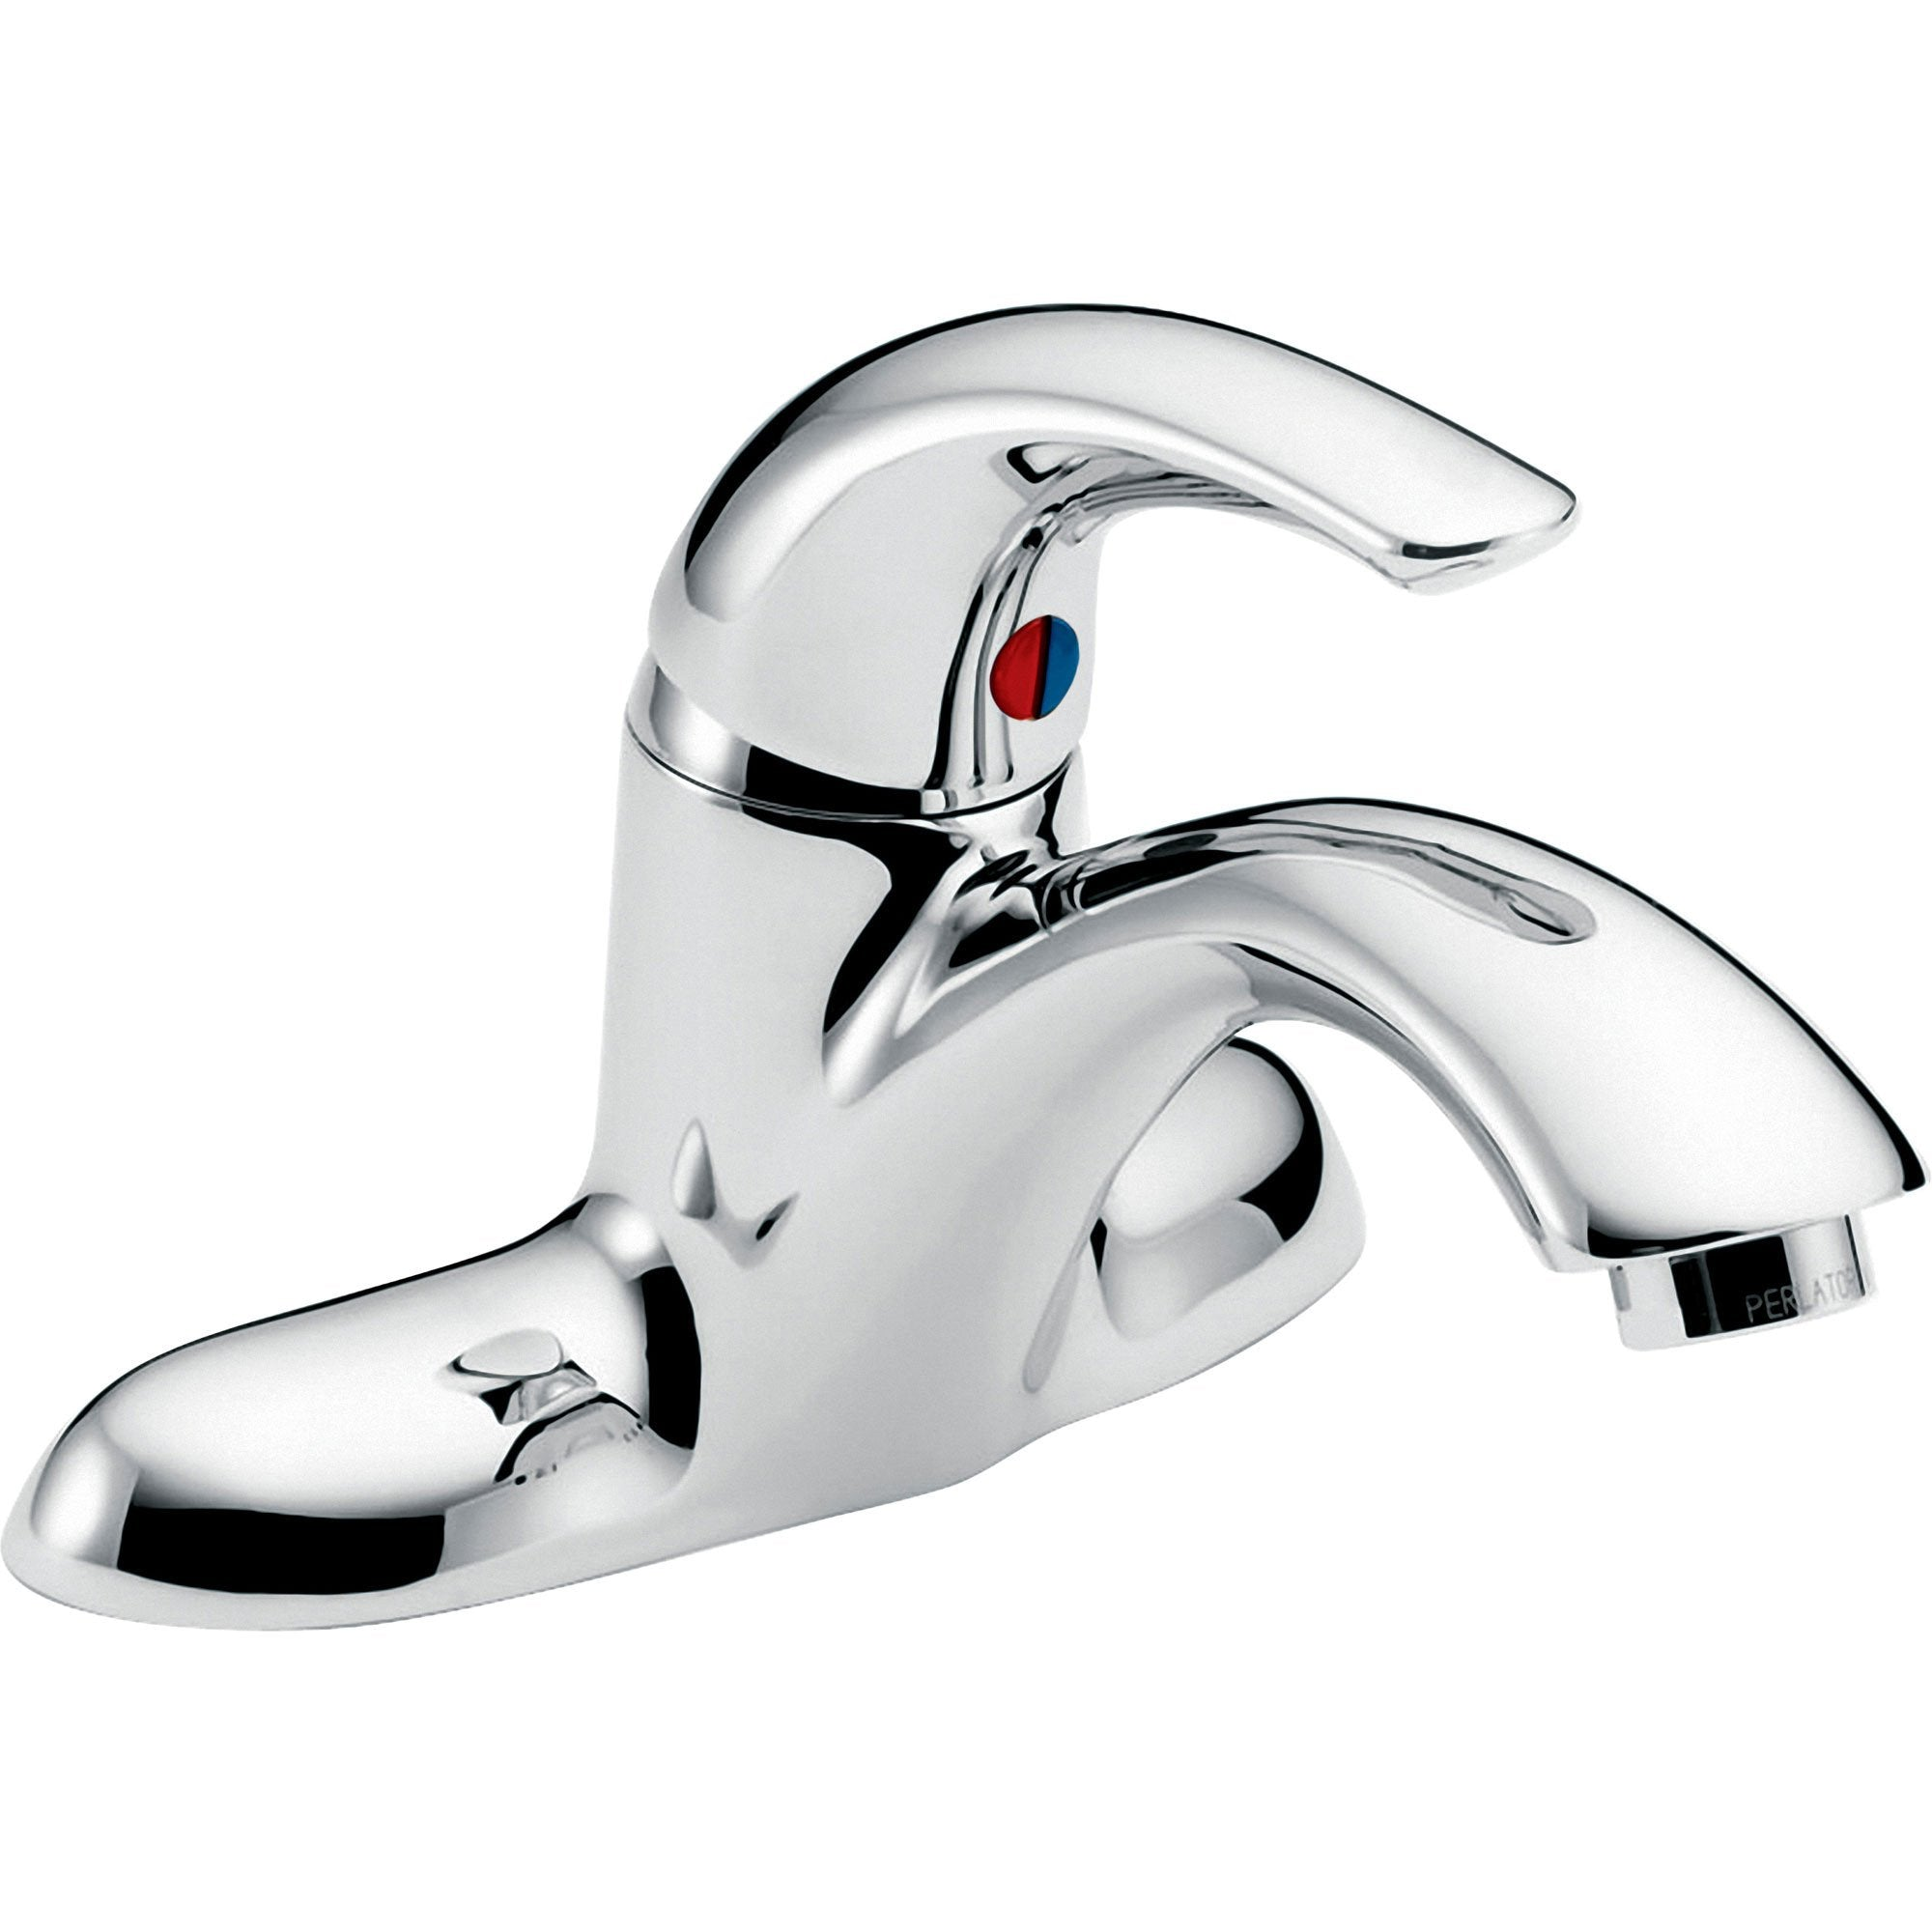 Exceptionnel Delta Teck Two Hole Single Handle Mid Arc Bathroom Faucet In Chrome 66    FaucetList.com